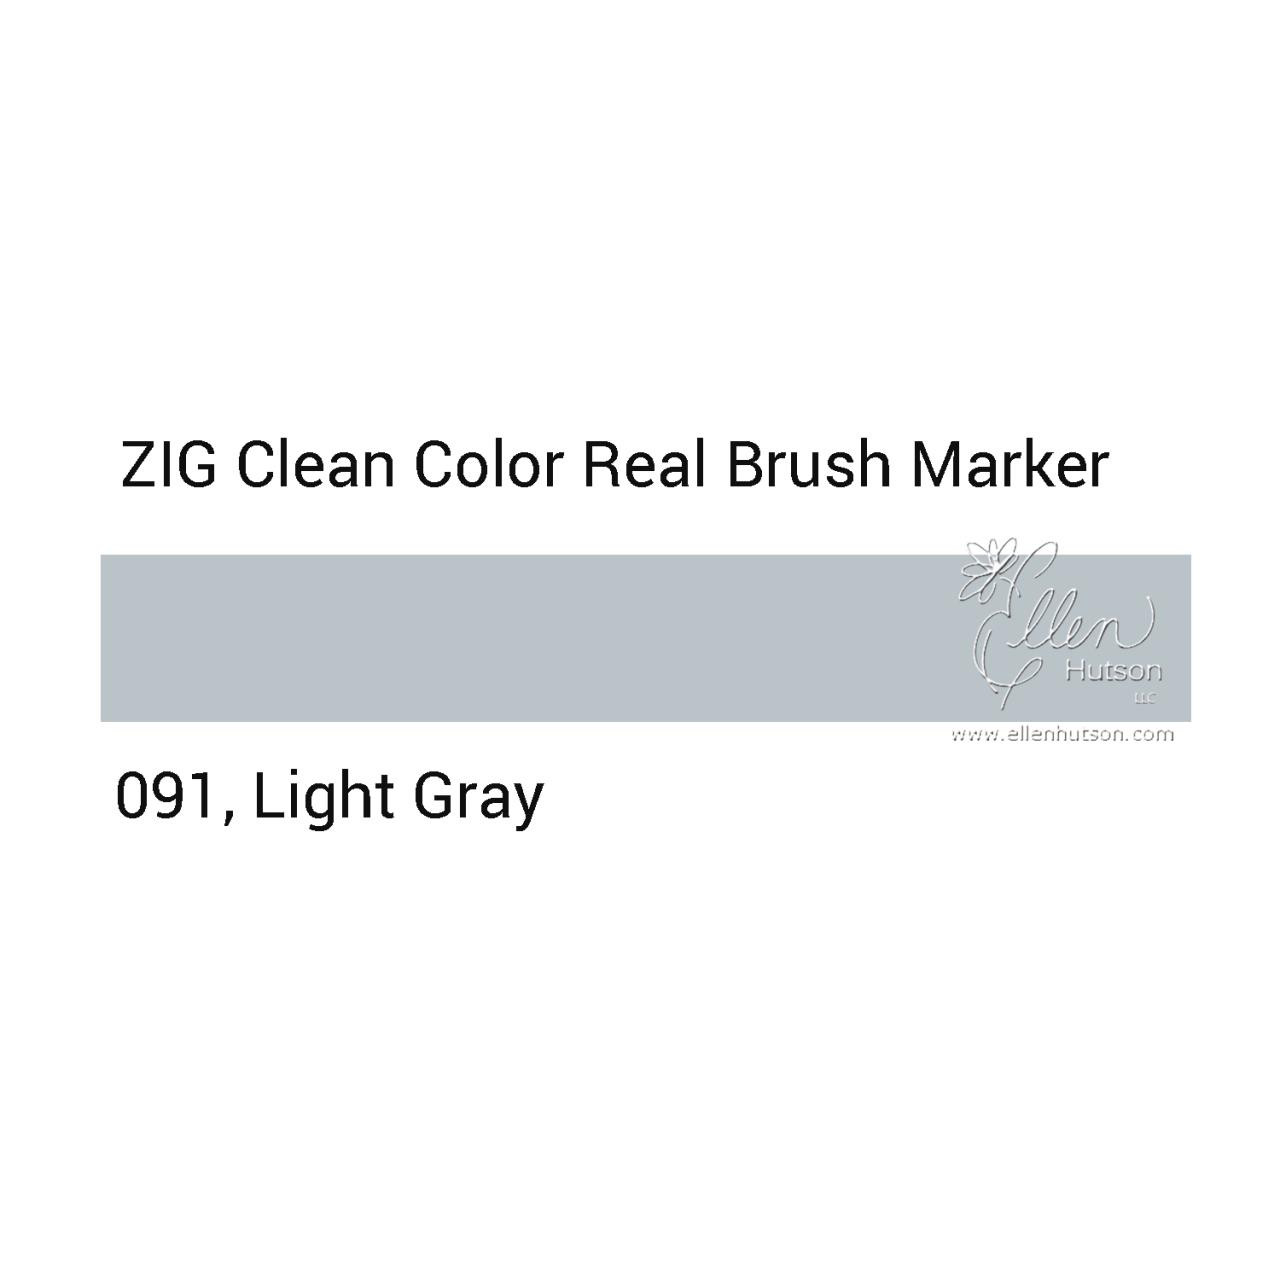 091 - Light Gray, ZIG Clean Color Real Brush Marker -